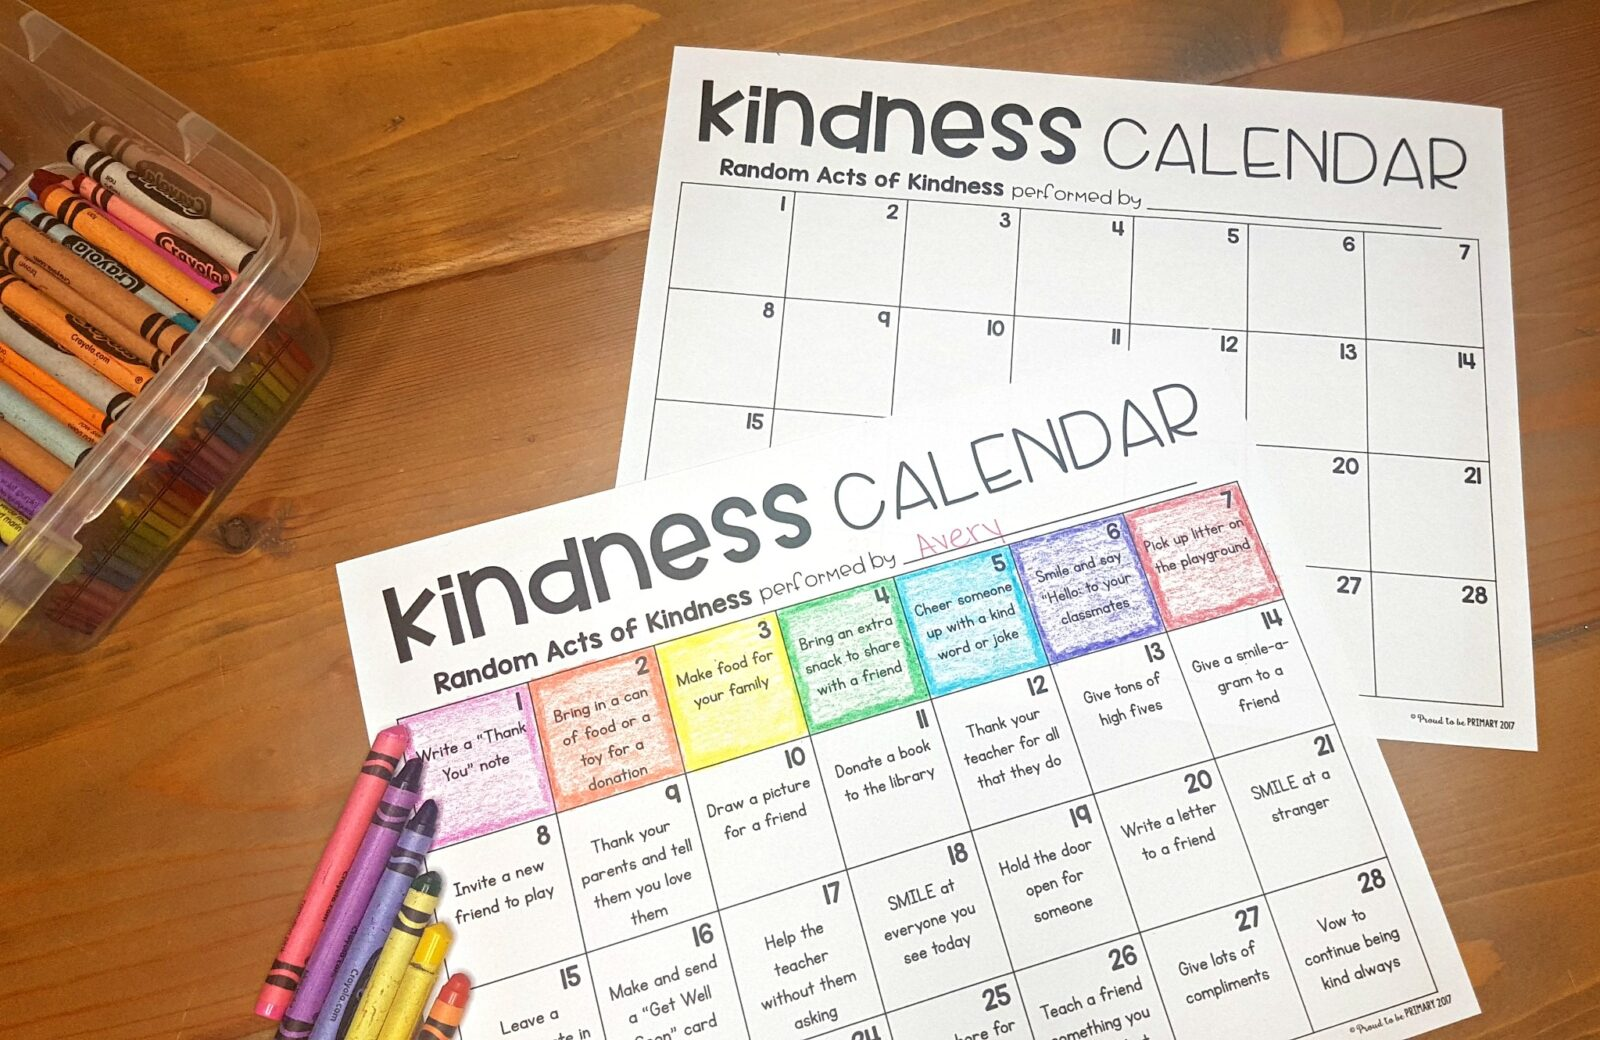 kindness books and videos - kindness calendar on table with crayons